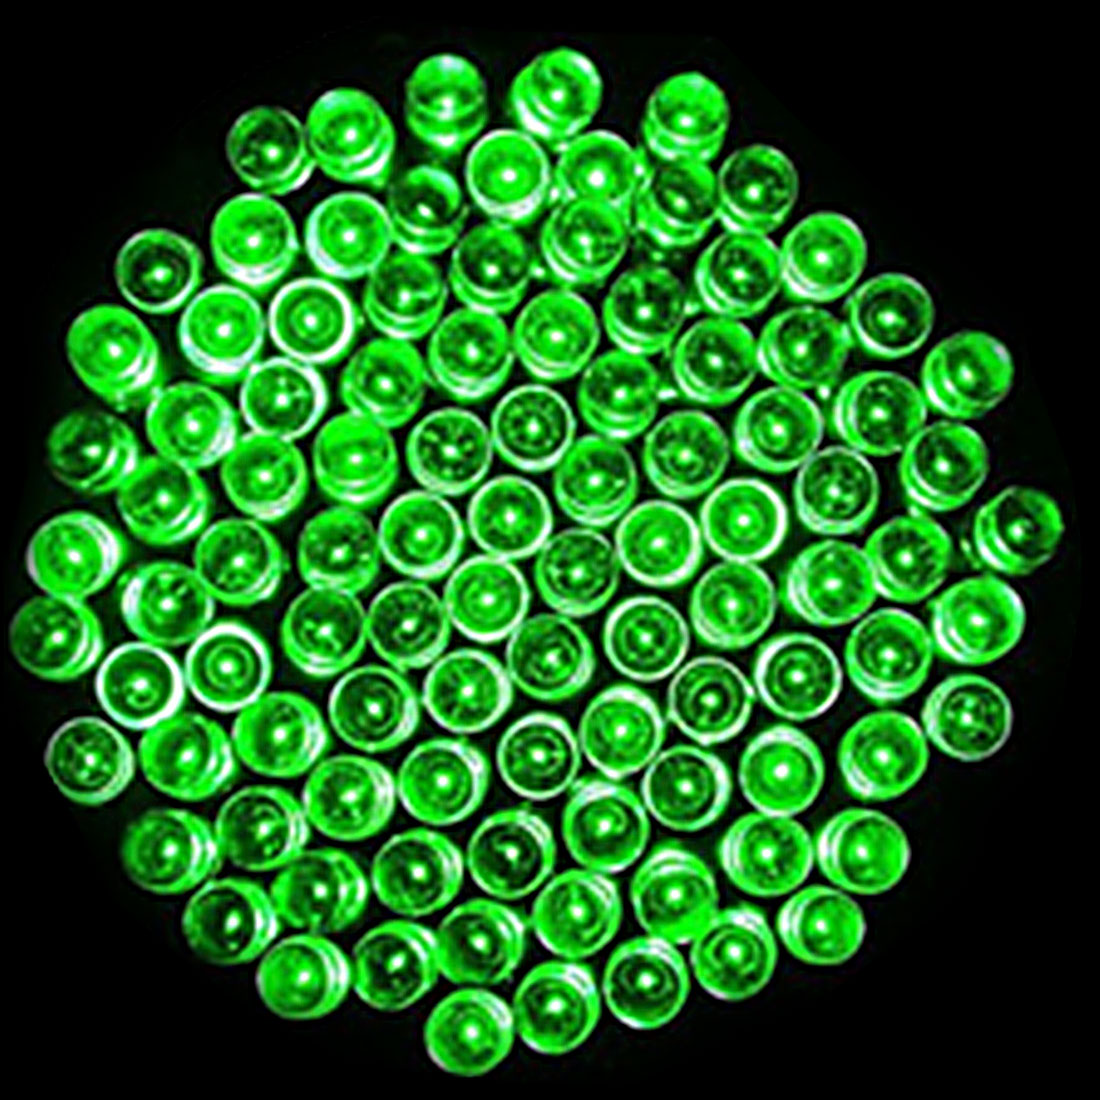 LED String Lights 100 LED Outdoor Solar Lamps Fairy Holiday Christmas Party Garlands Solar Garden Waterproof Lights MulticolorsLED String Lights 100 LED Outdoor Solar Lamps Fairy Holiday Christmas Party Garlands Solar Garden Waterproof Lights Multicolors